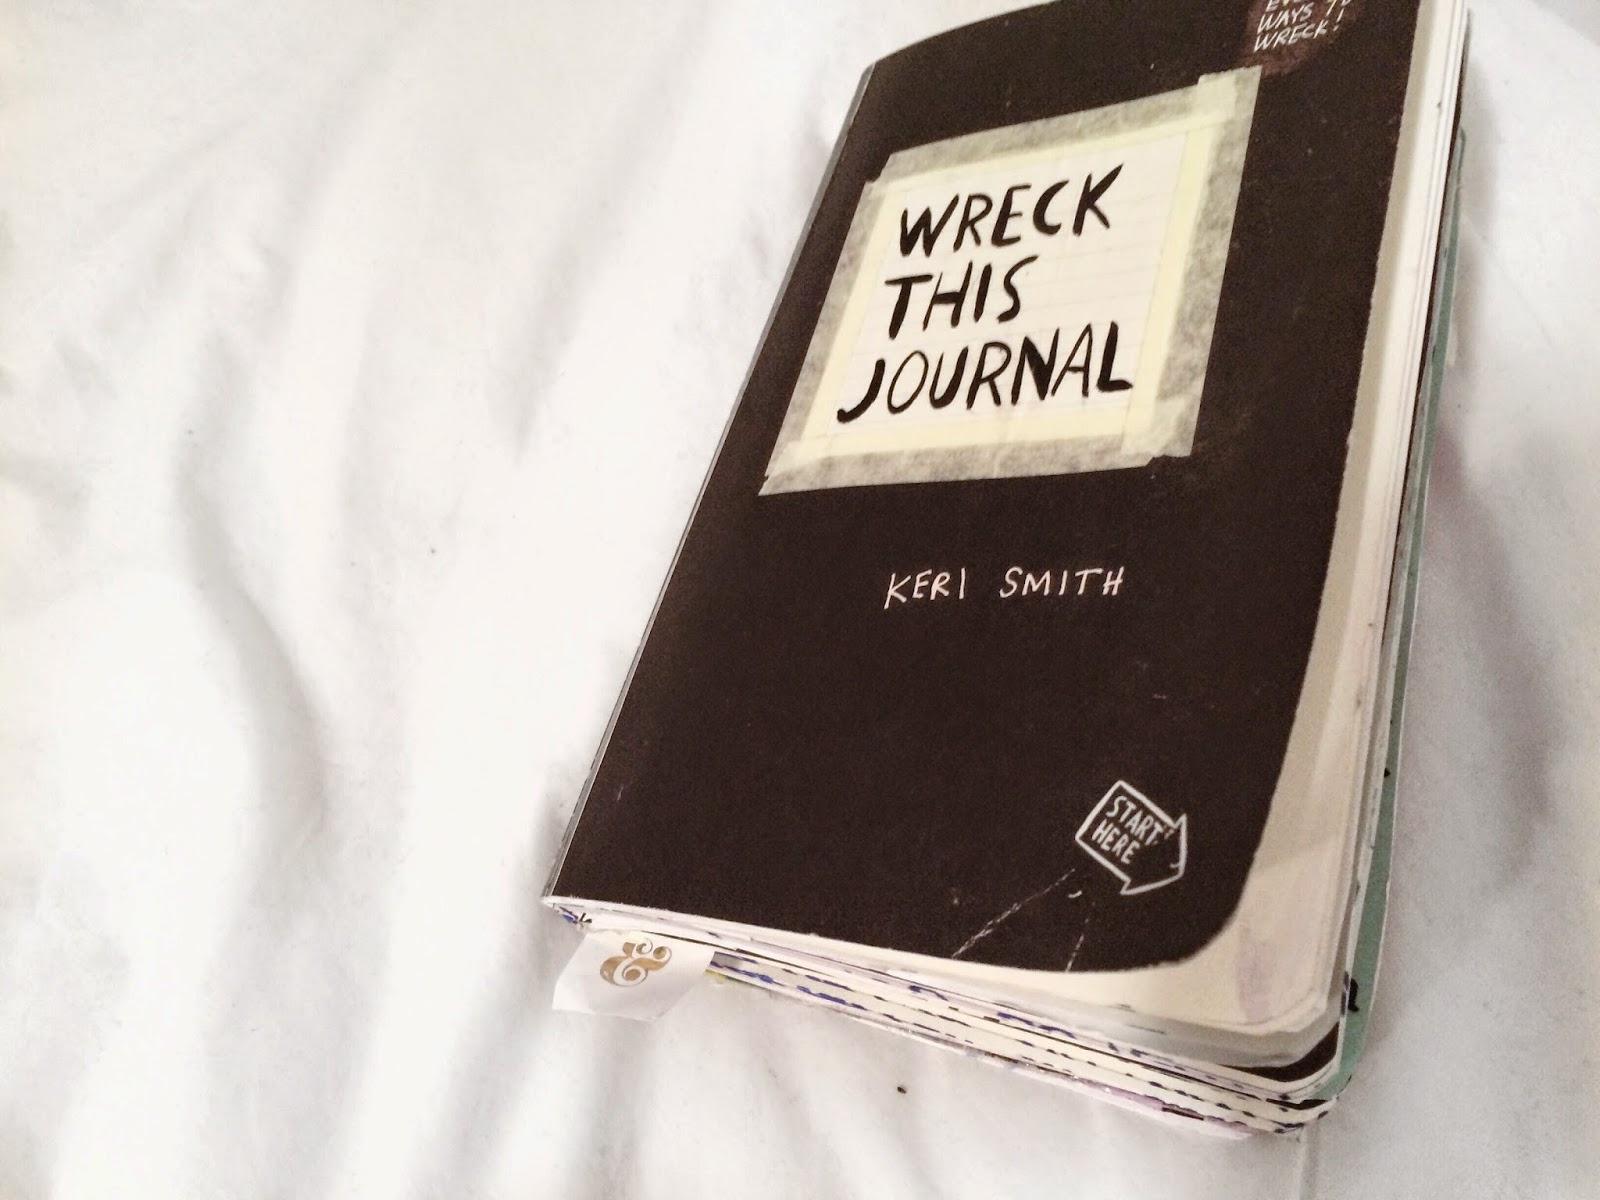 Wreck This Journal: The Good, The Bad, & The Wrecked.